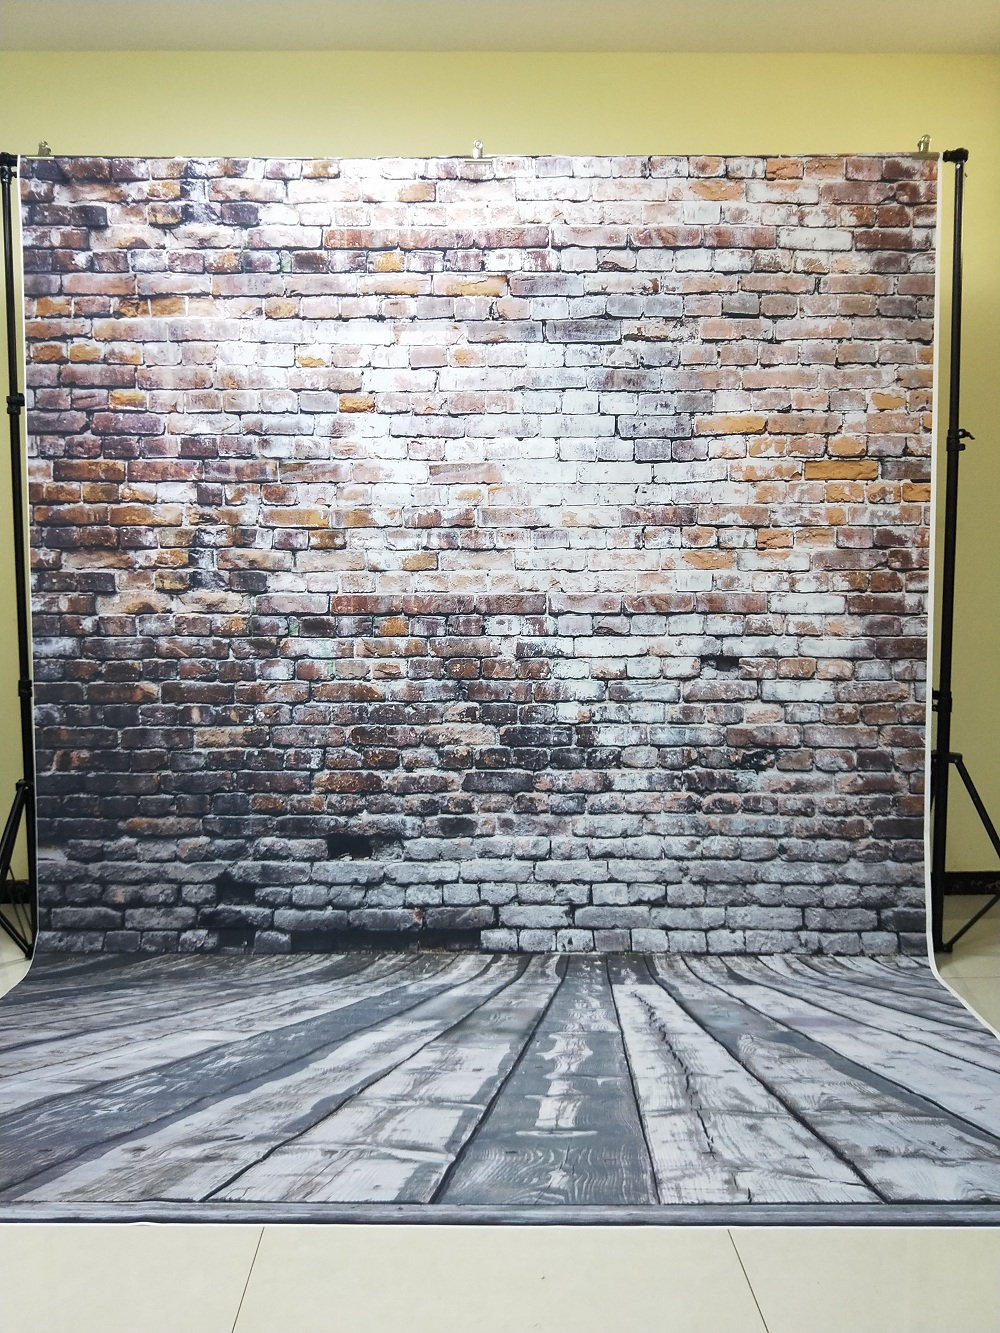 HUAYI 8x12ft(2.5x3.75m) brick paper brick wall backdrop vinyl photography backdrops photo props brick background D-3489 photography backdrop wooden car brick wall background vinyl backdrops for photography page 2